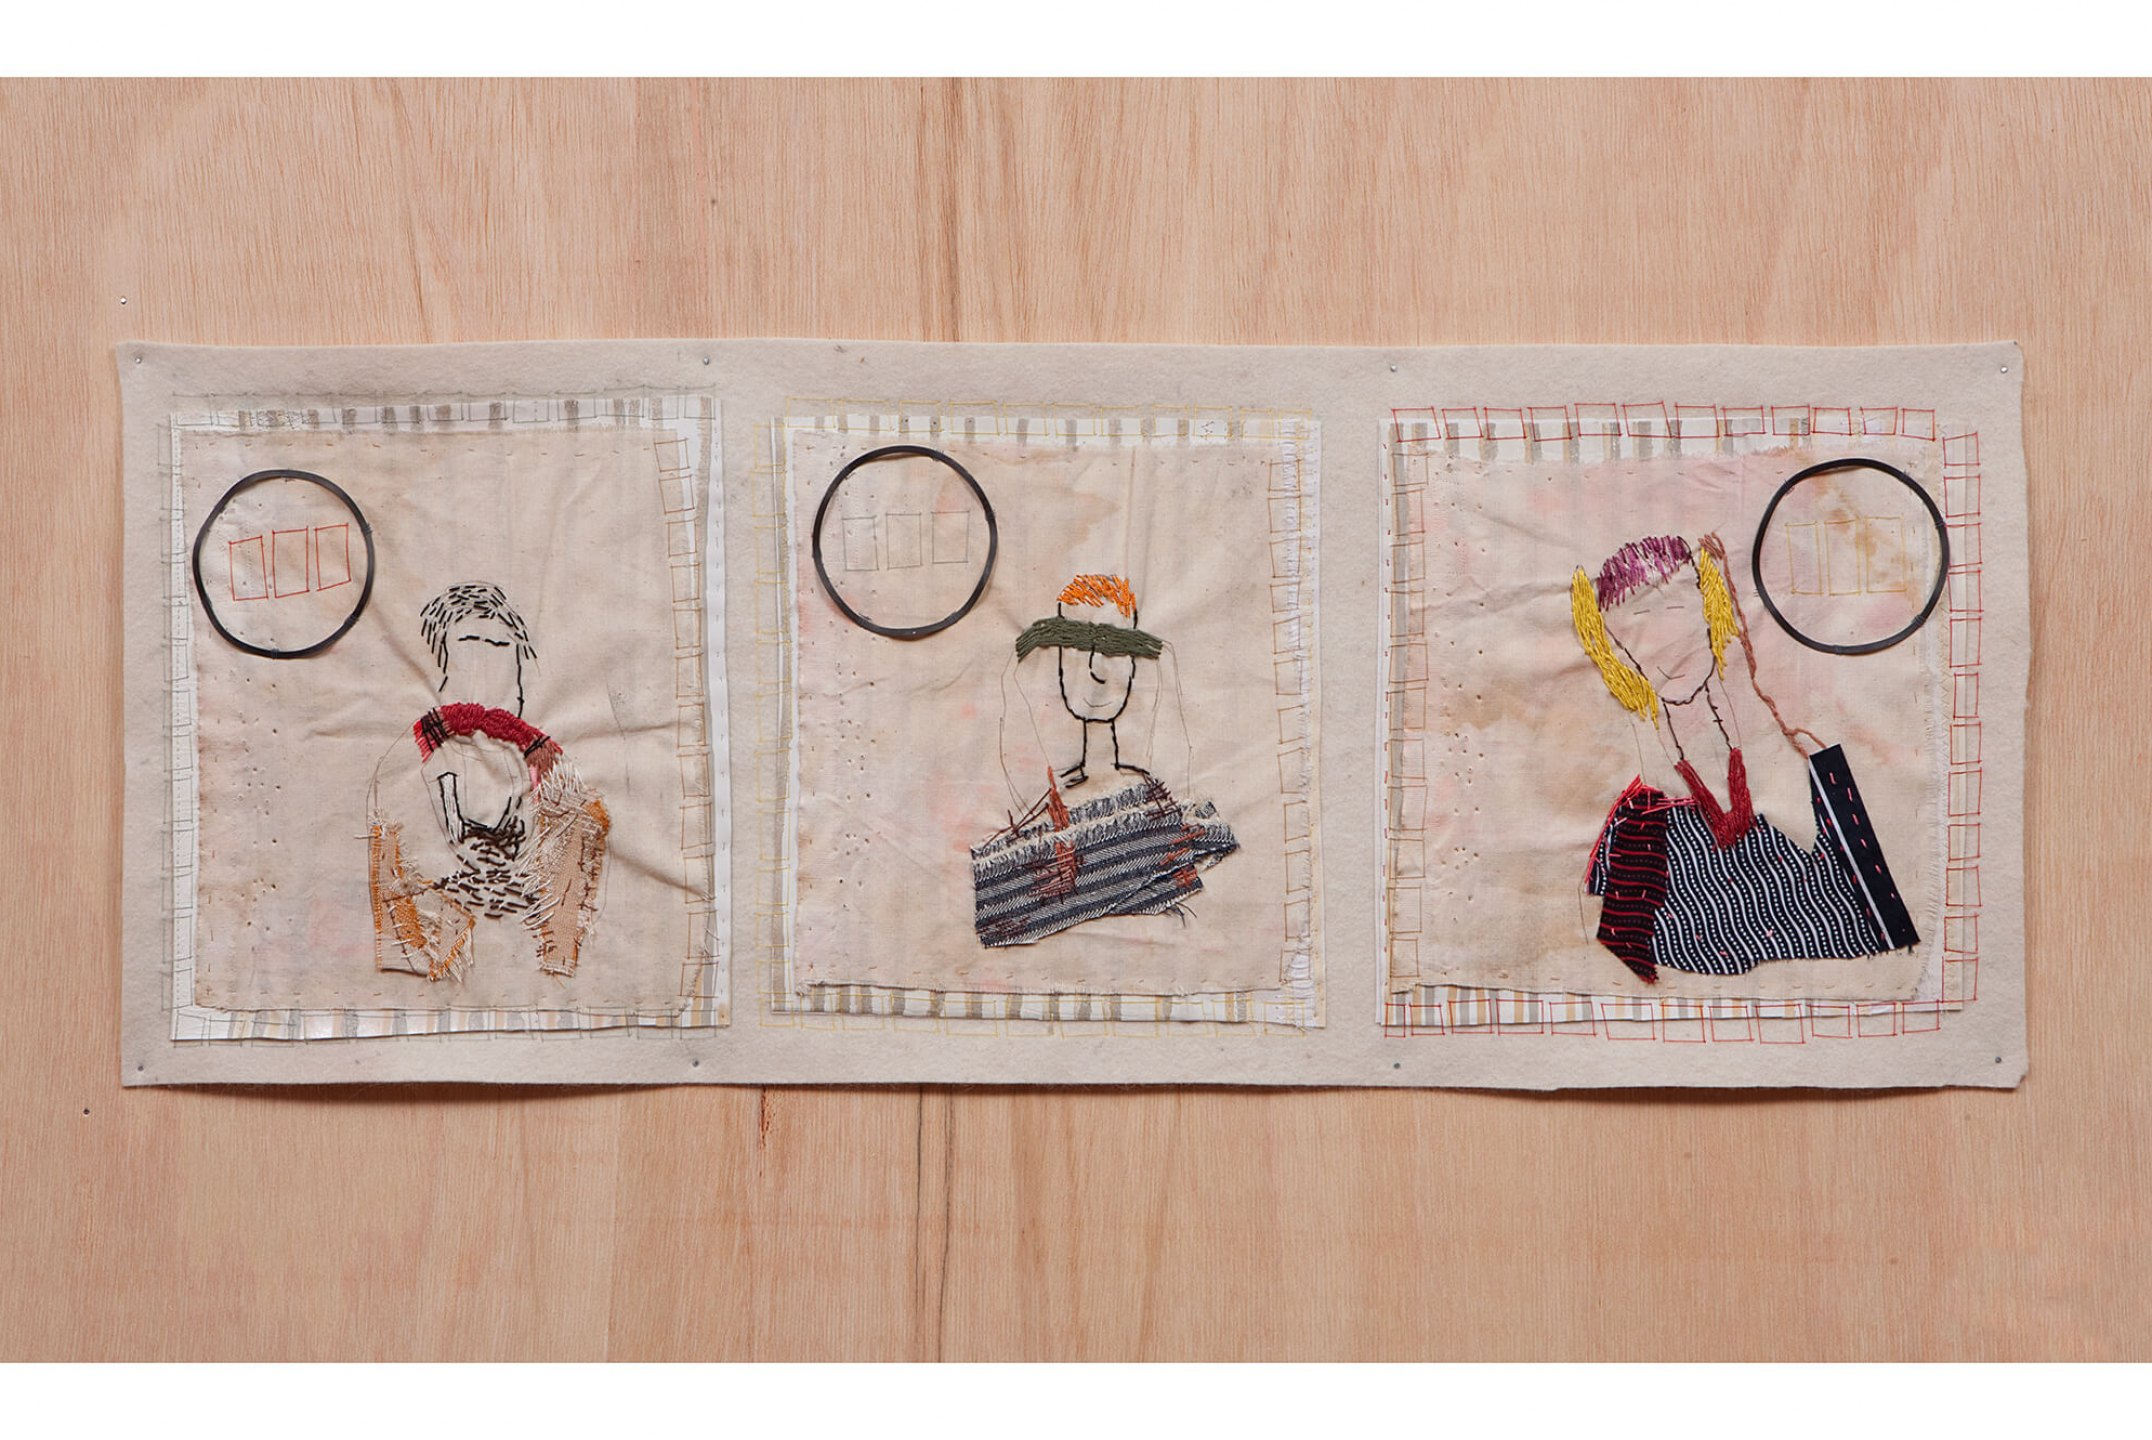 f.marquespeteado,<em>As Chaves do Reino,</em> 2012, applications on cotton and PVC's, industrial iron pieces, hand embroidery on industrial felt, 30 × 79 cm - Mendes Wood DM